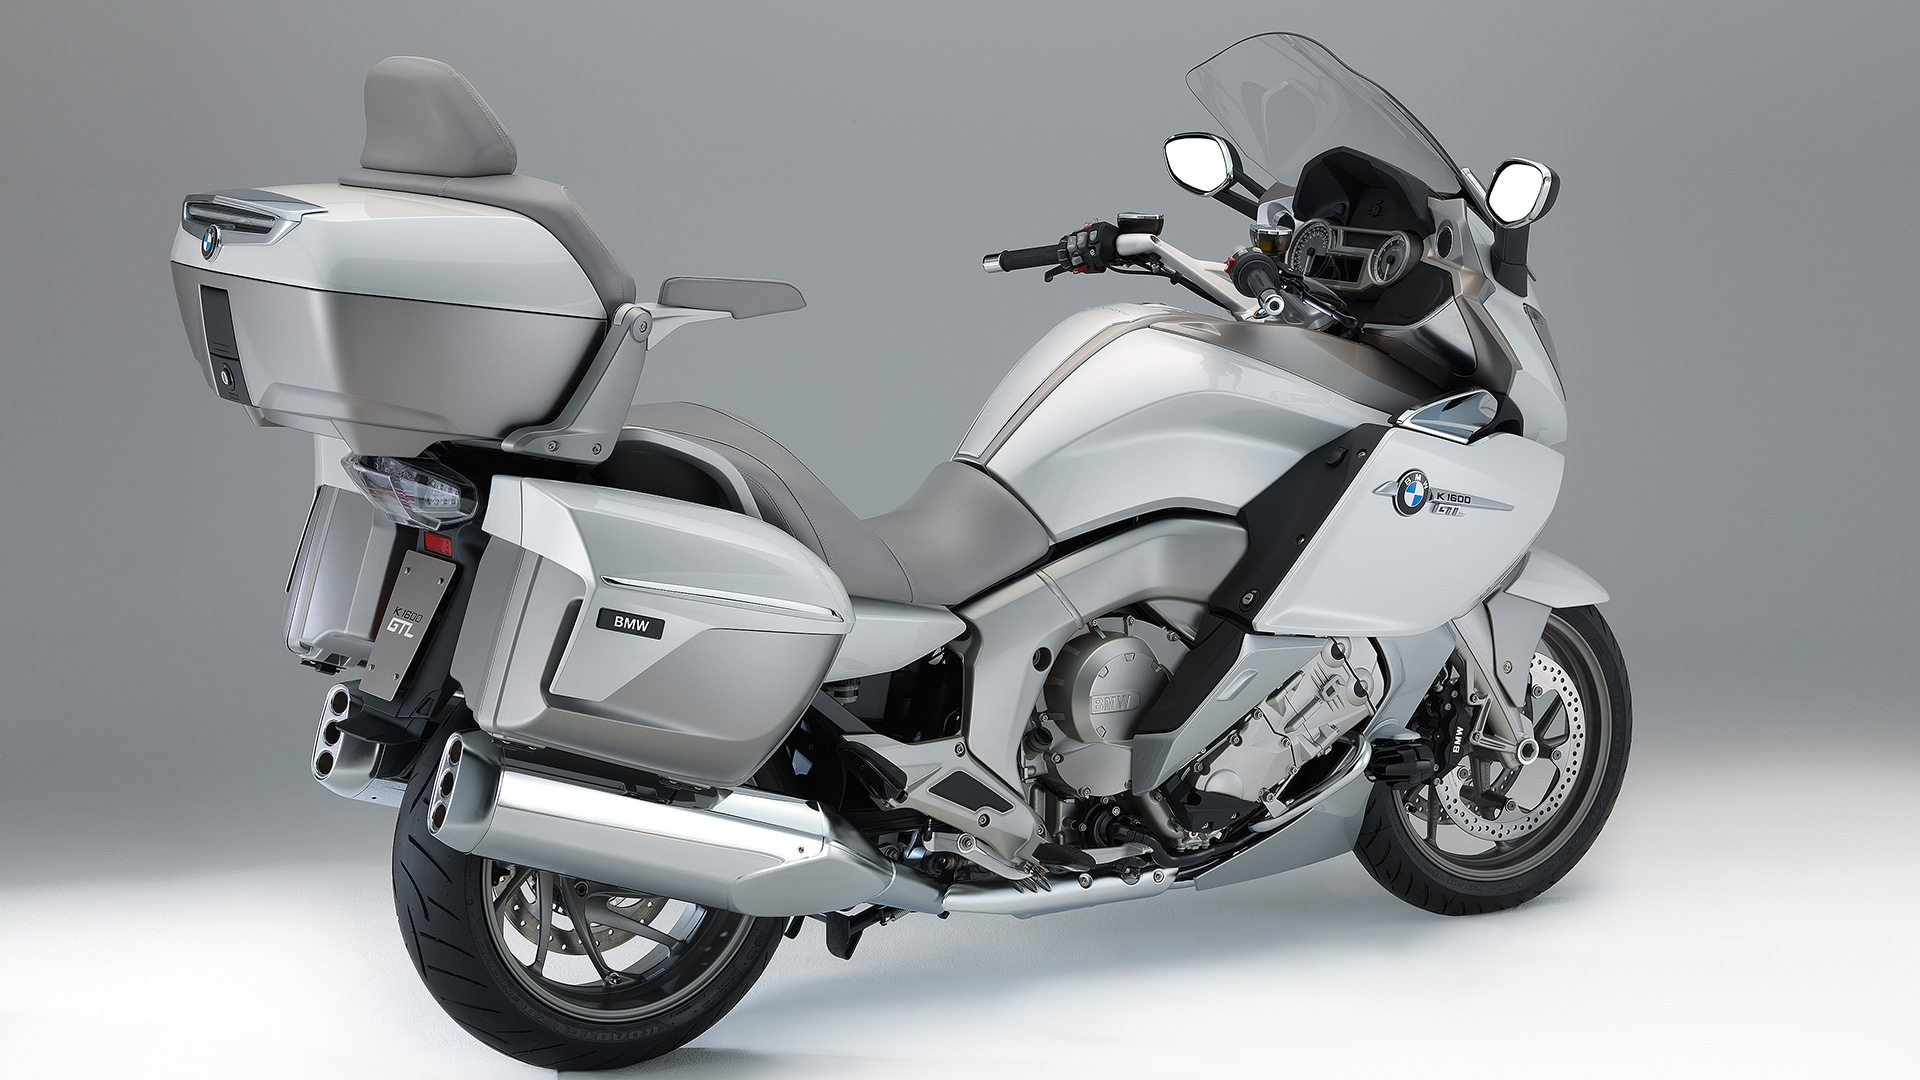 bmw k 1600 gtl 2017 pro price mileage reviews. Black Bedroom Furniture Sets. Home Design Ideas